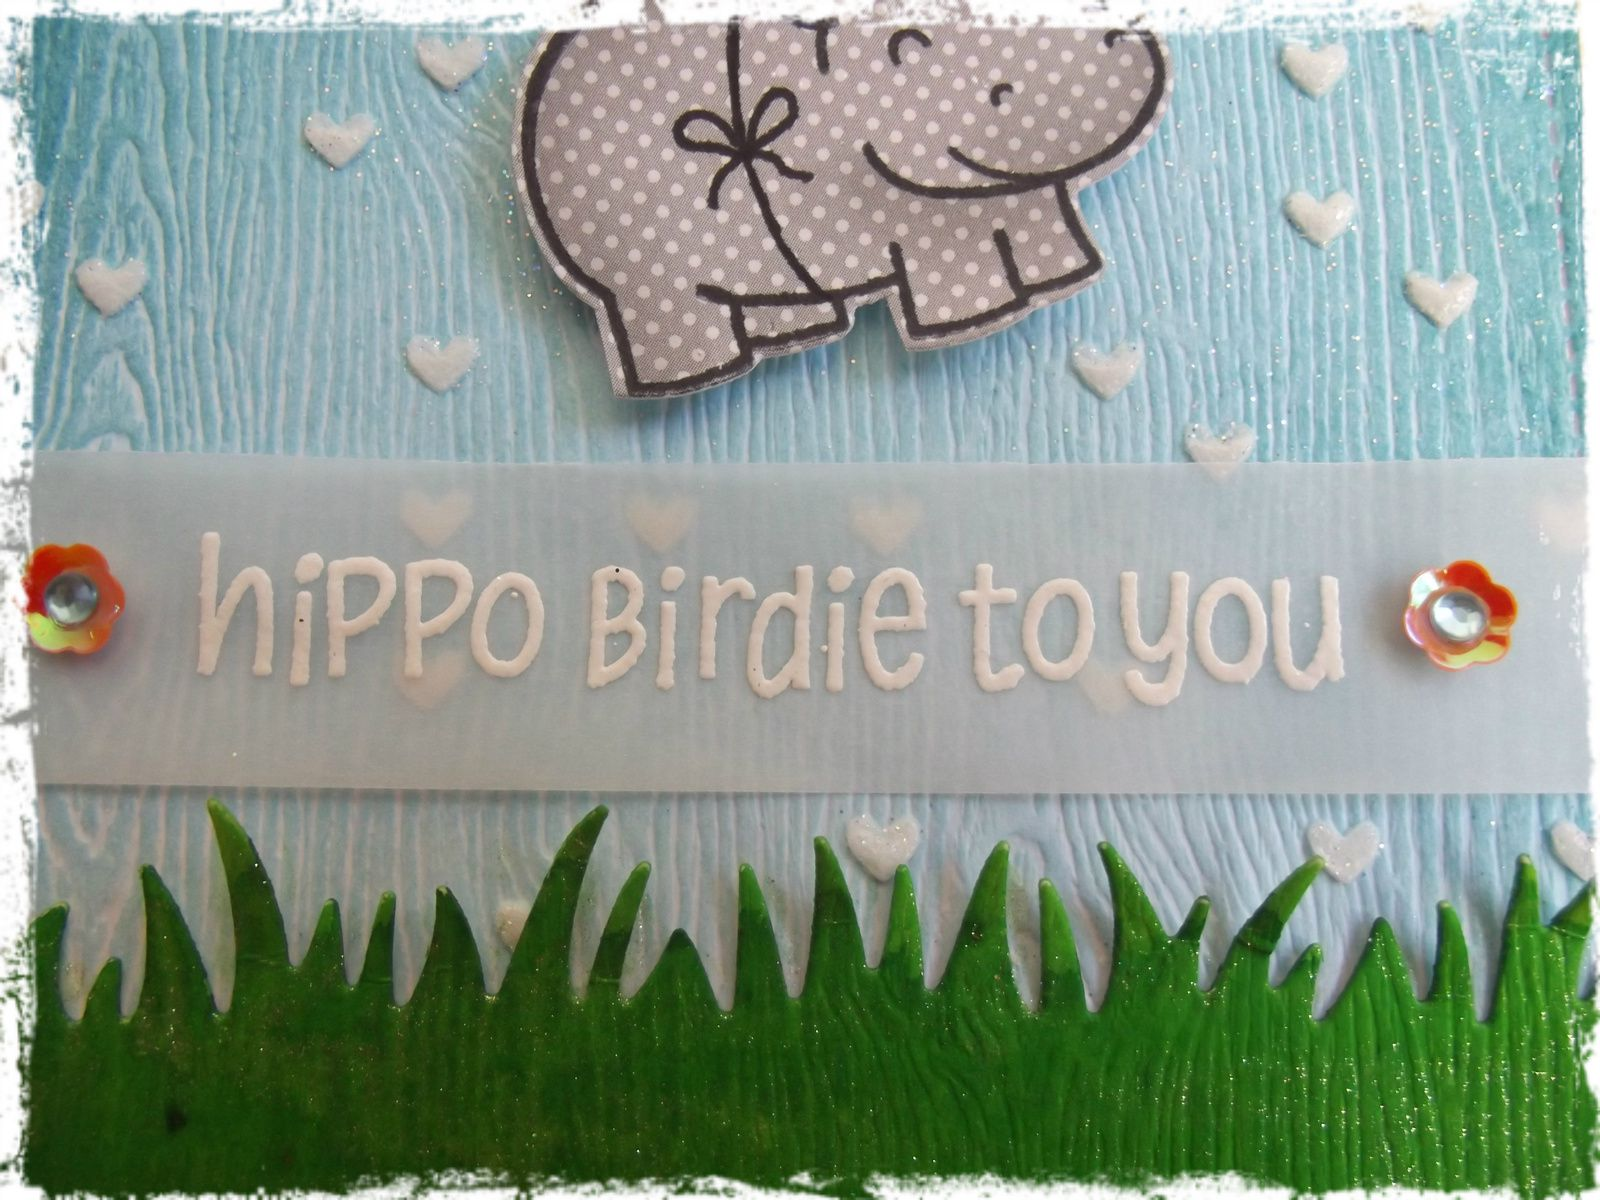 Hippo birdie to you !!